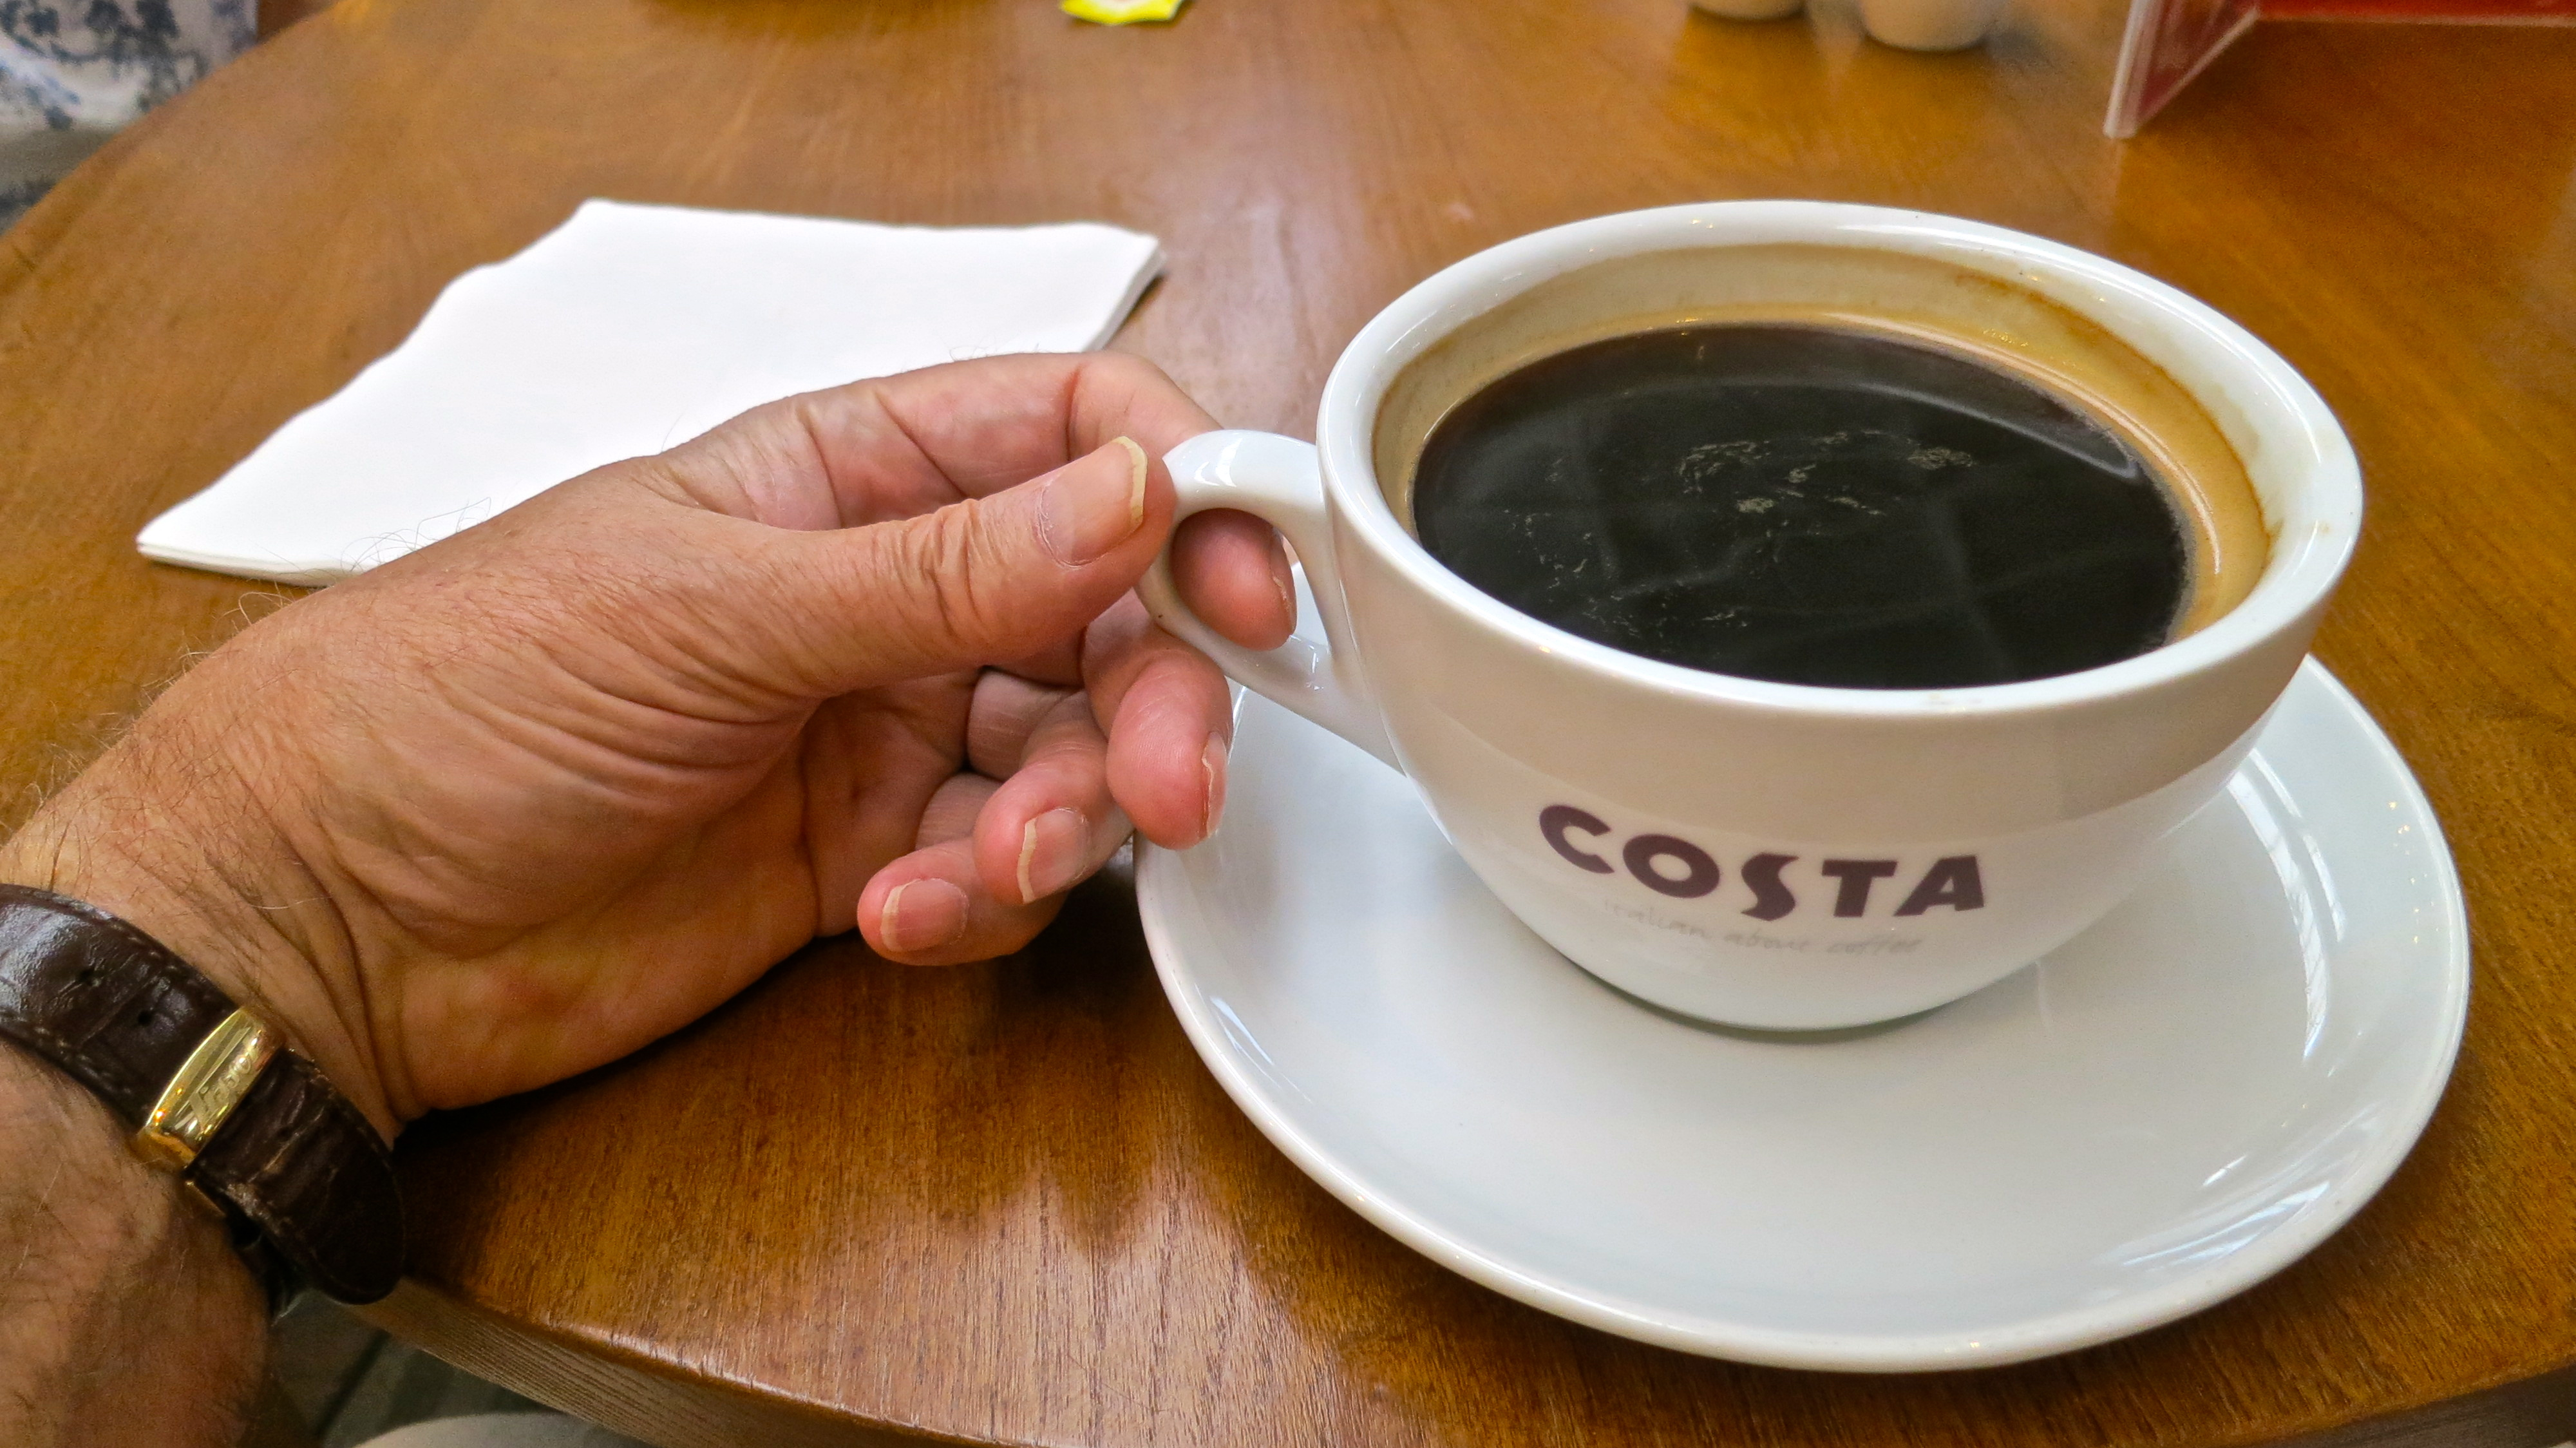 costa coffee 2604k followers, 311 following, 941 posts - see instagram photos and videos from @costacoffee.